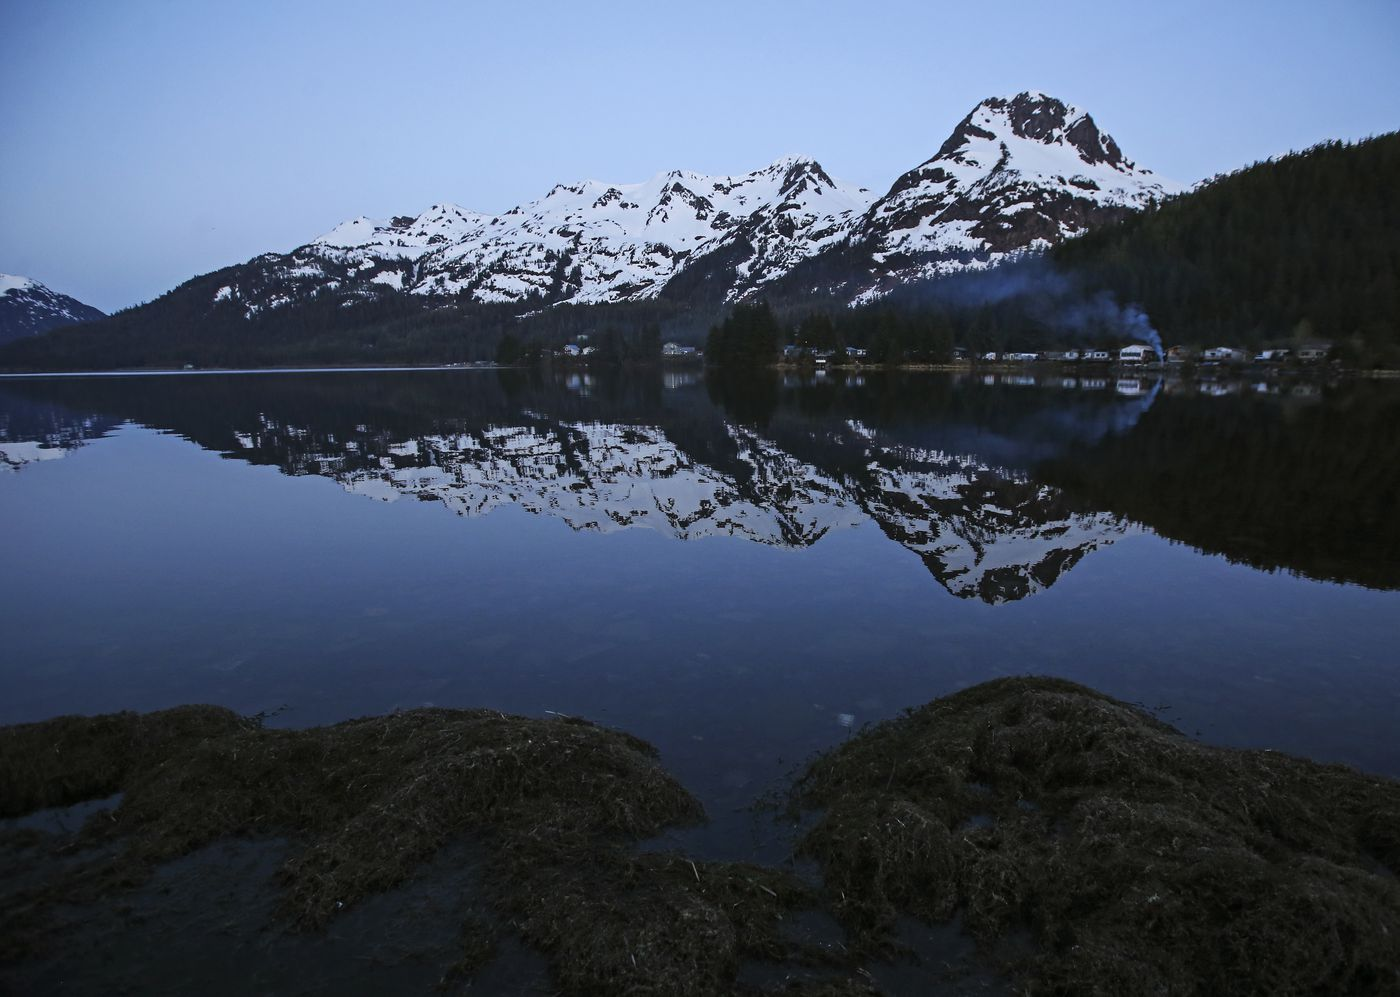 Mt. Eccles reflects in Eyak Lake just after sunset in Cordova on Monday, May 17, 2021. (Emily Mesner / ADN)